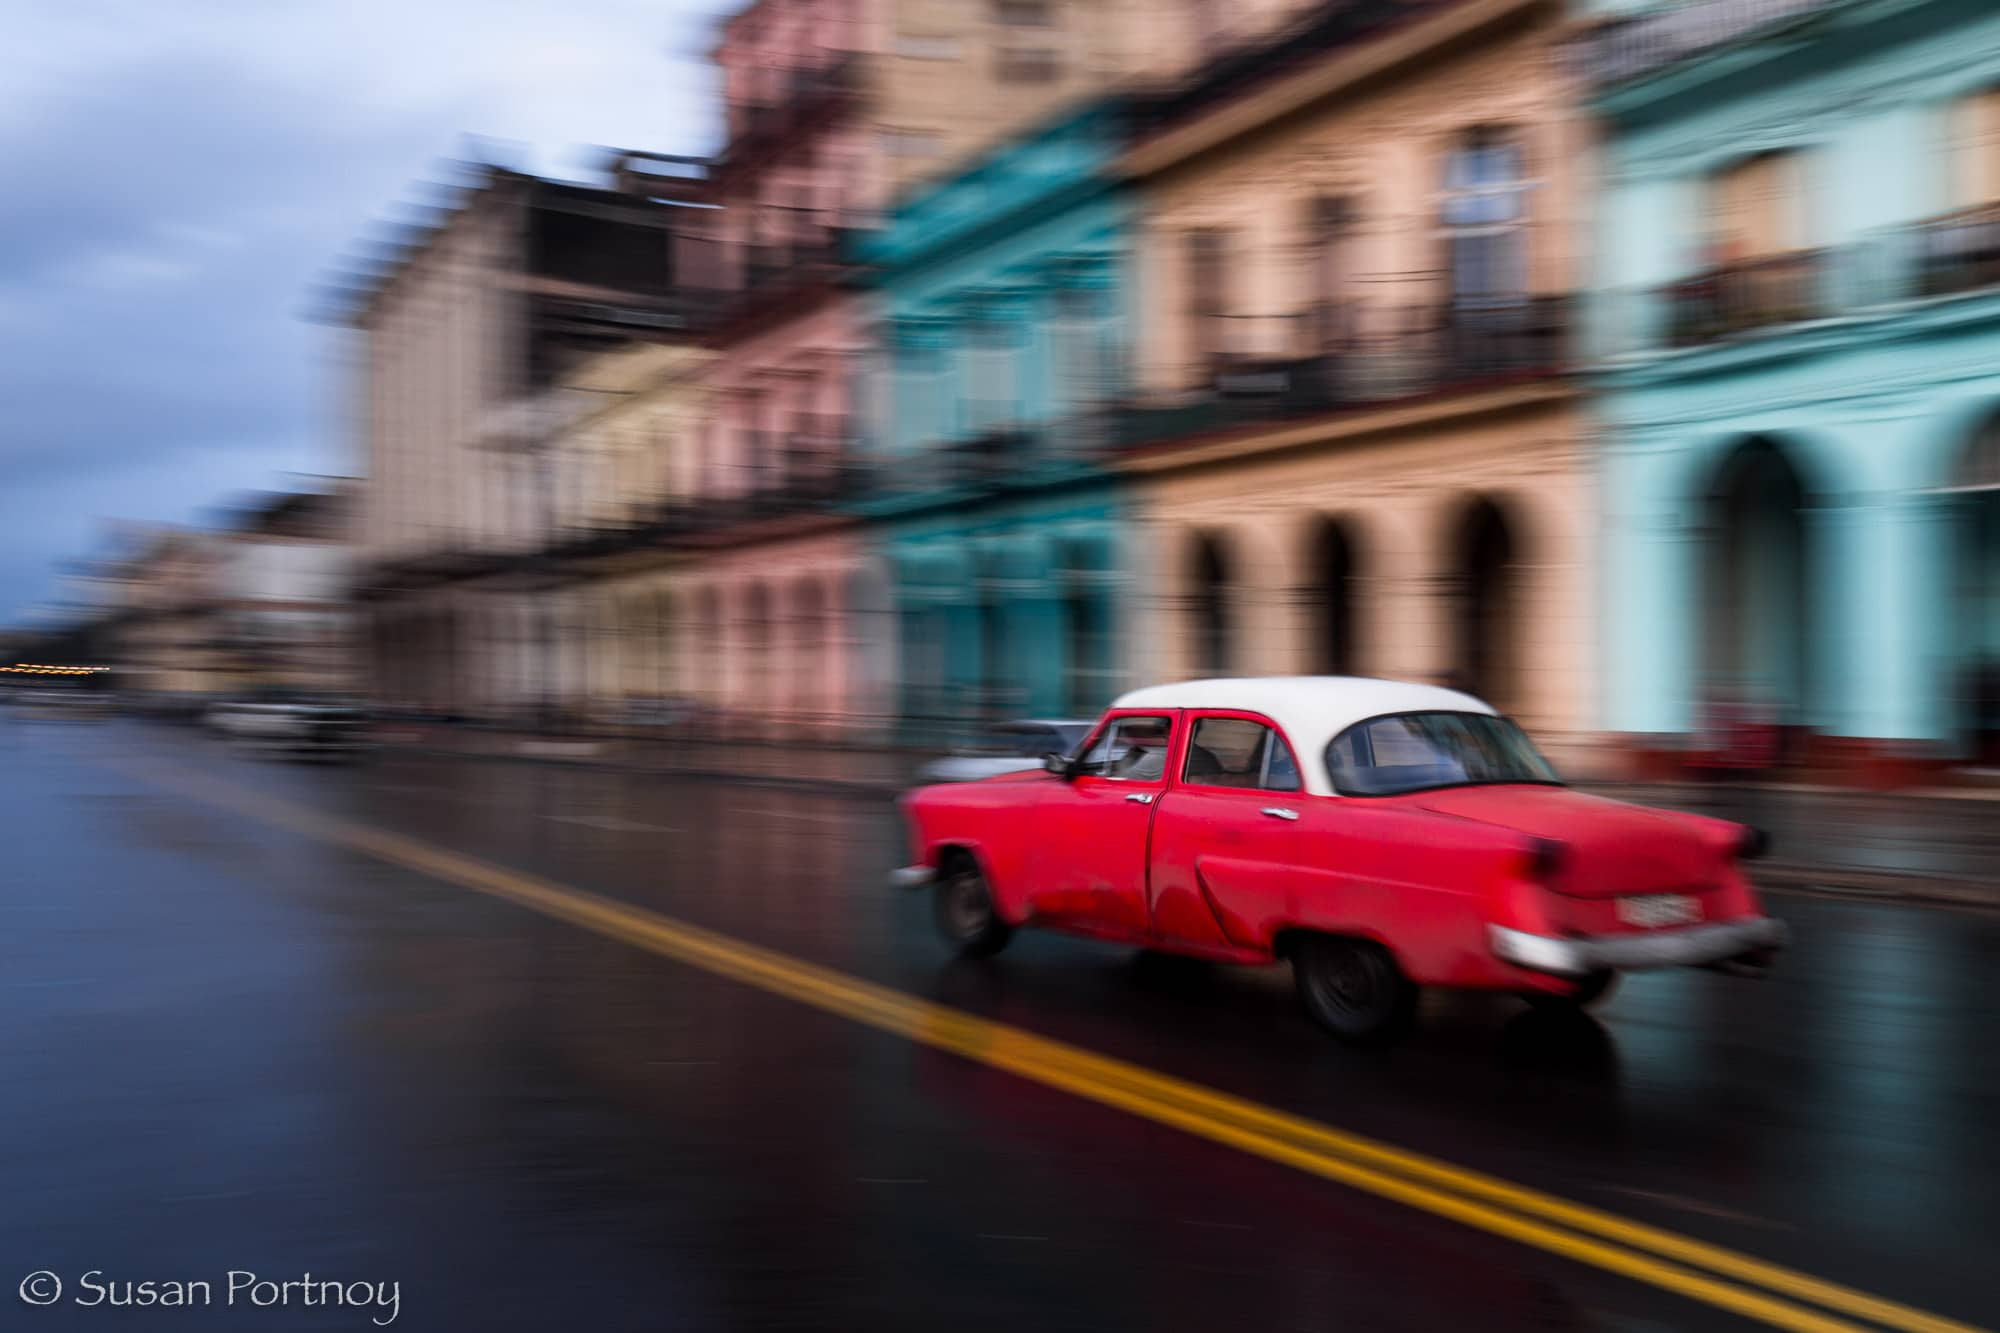 Antique car driving down a street in Havana, Cuba